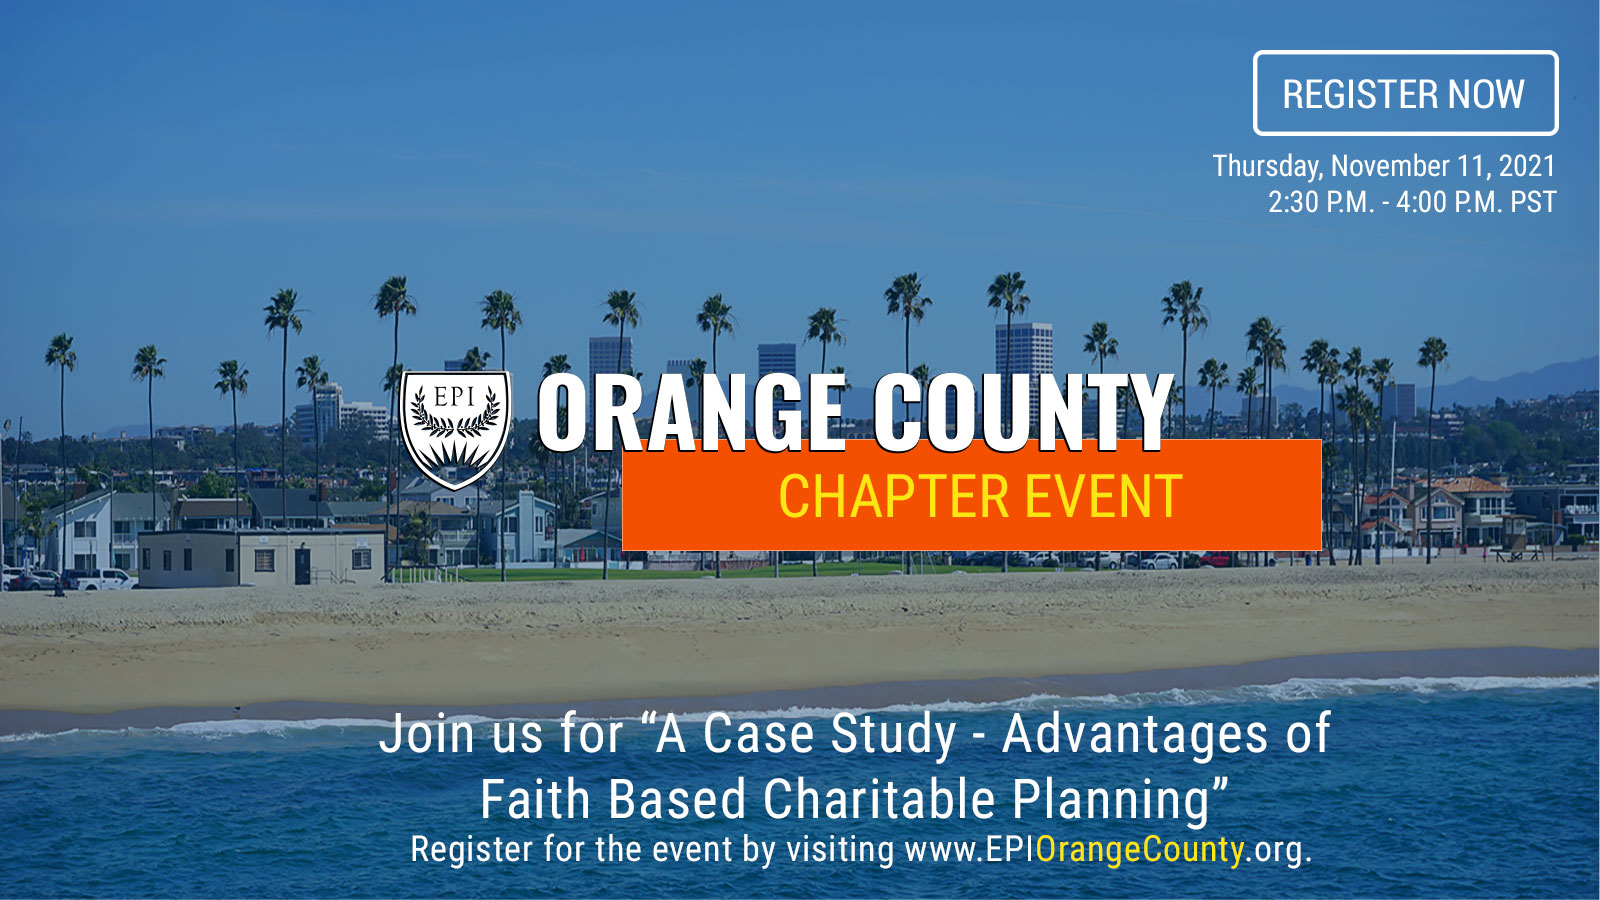 A Case Study - Advantages of Faith Bases Charitable Planning